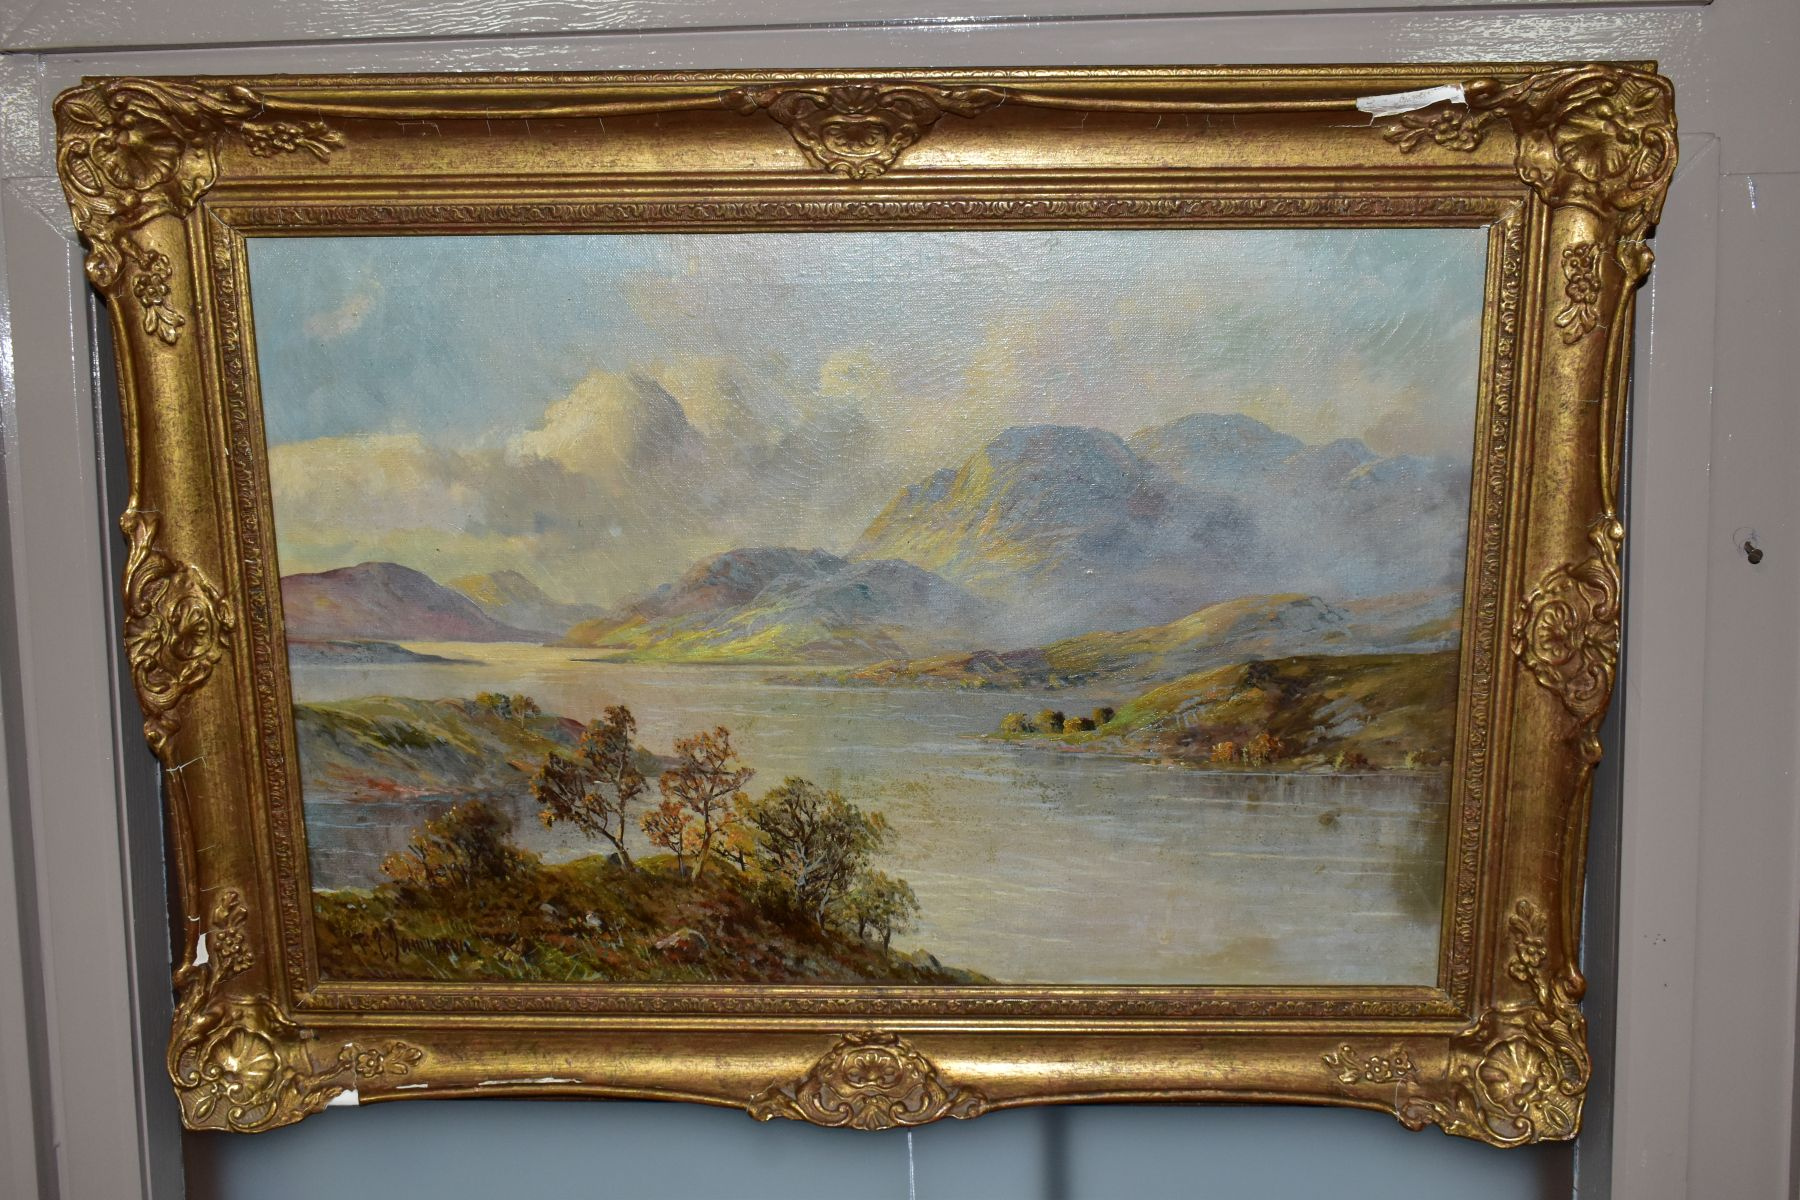 FRANCIS E.JAMIESON (1895-1950) 'LOCH KATRINE', a Scottish landscape, a large body of water to the